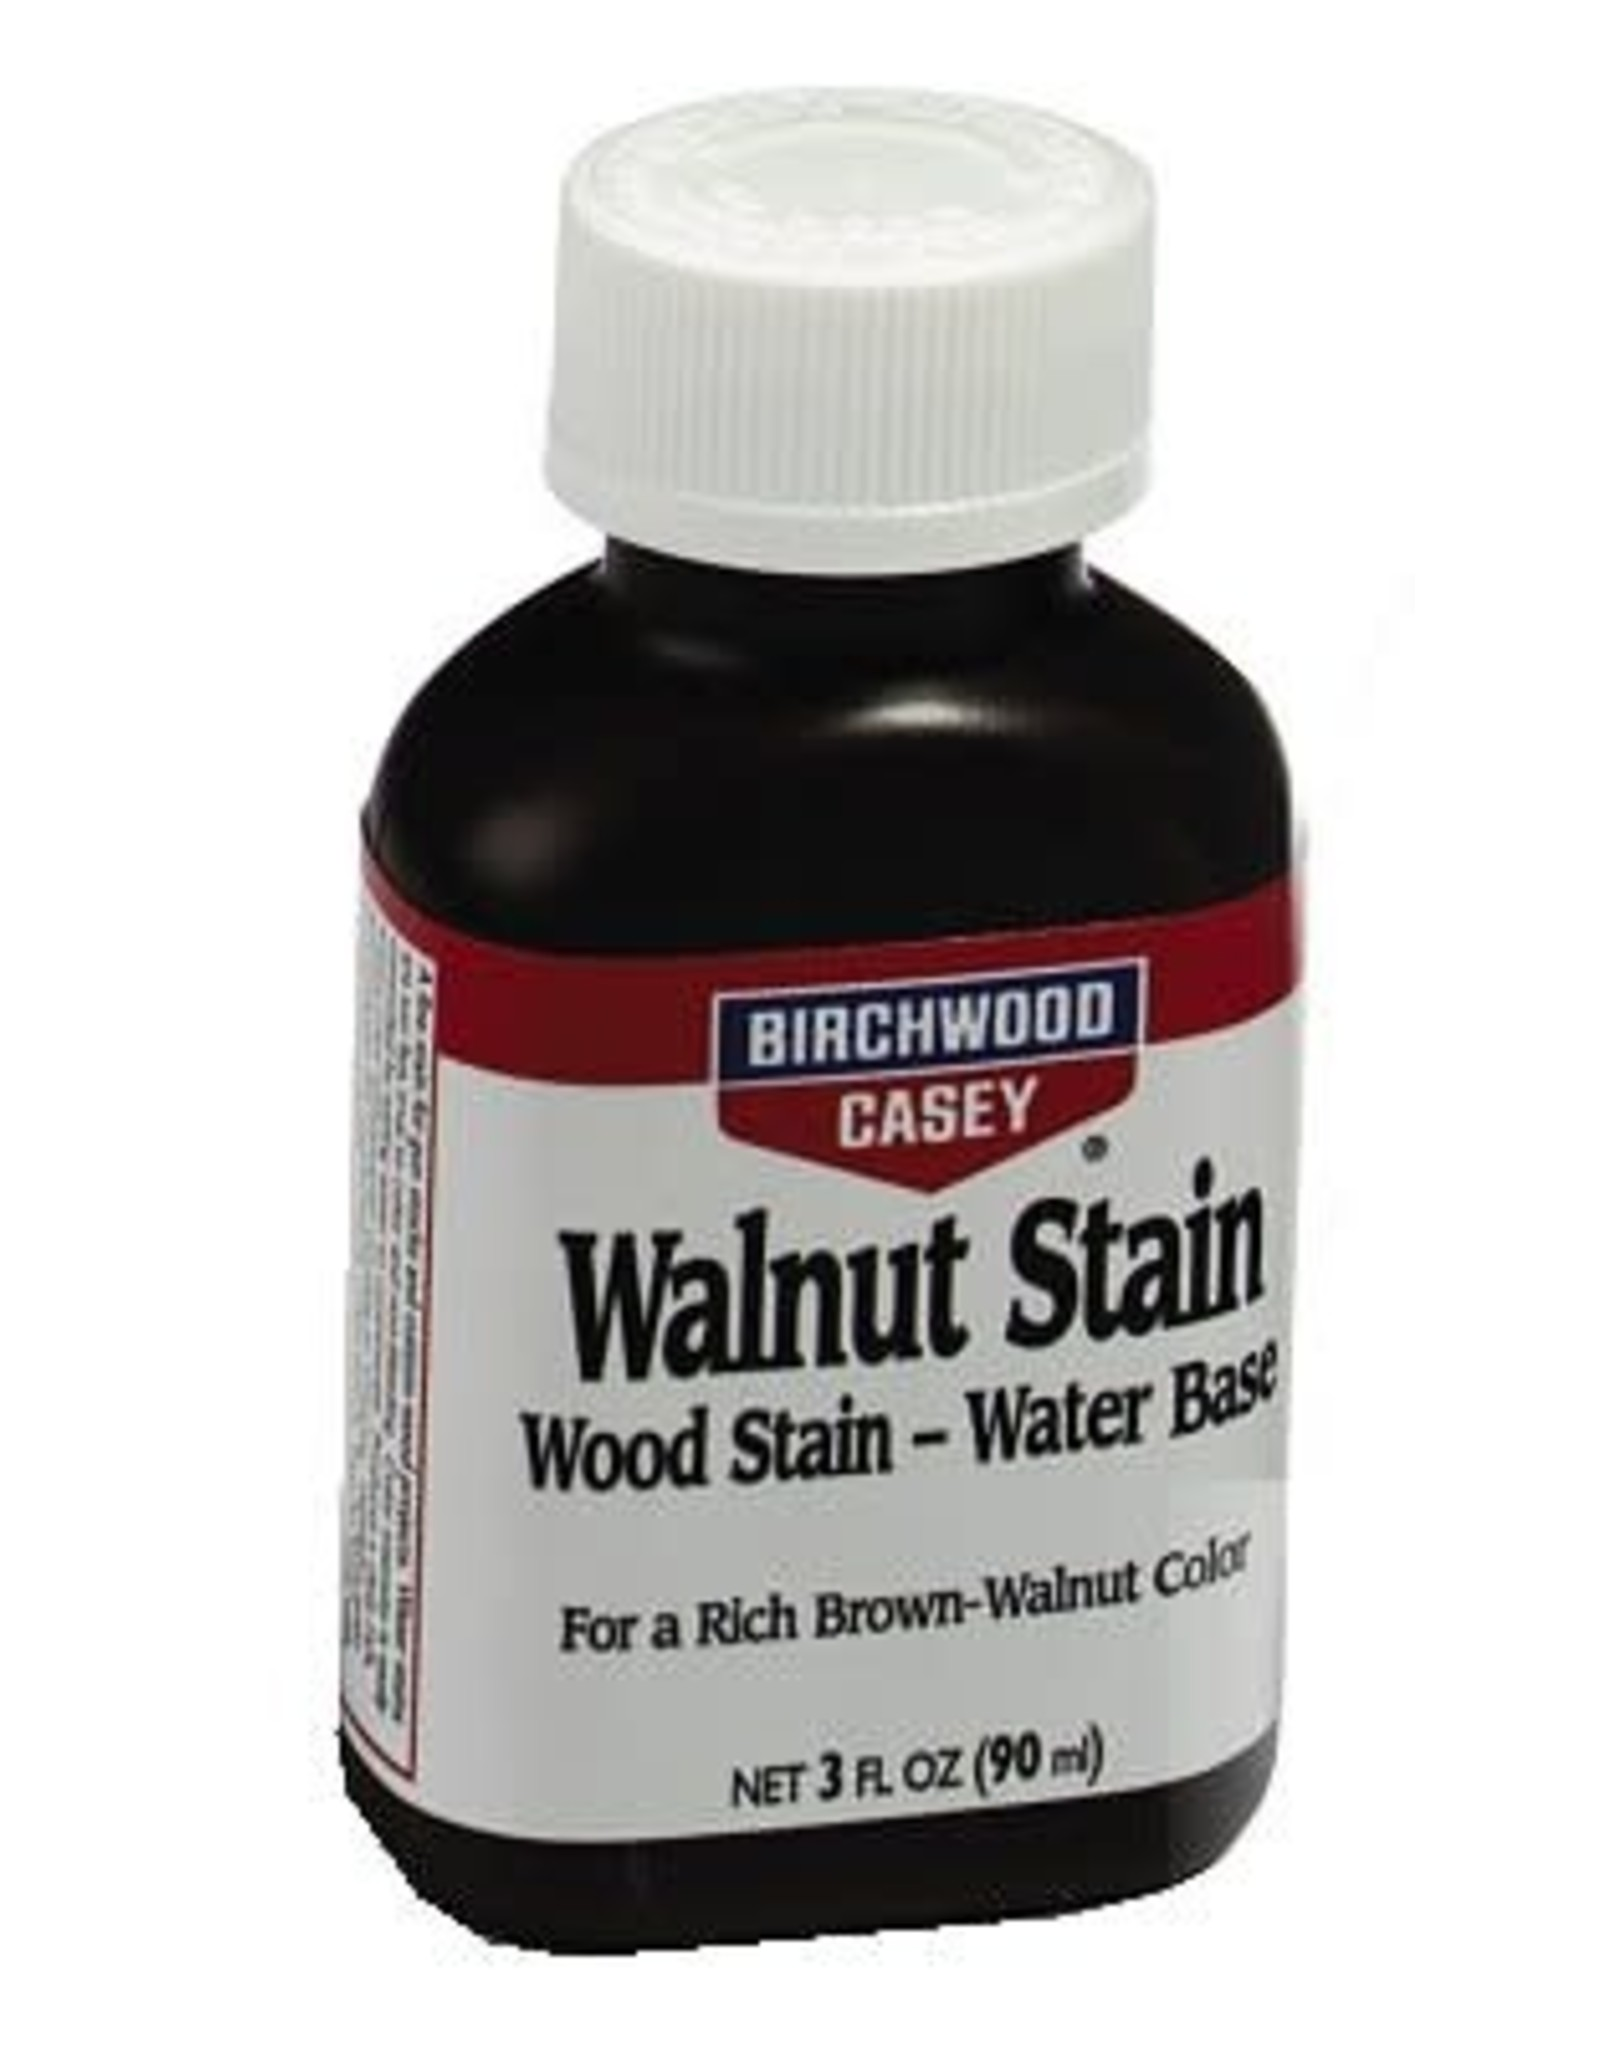 BIRCHWOOD CASEY BWC Walnut Stain